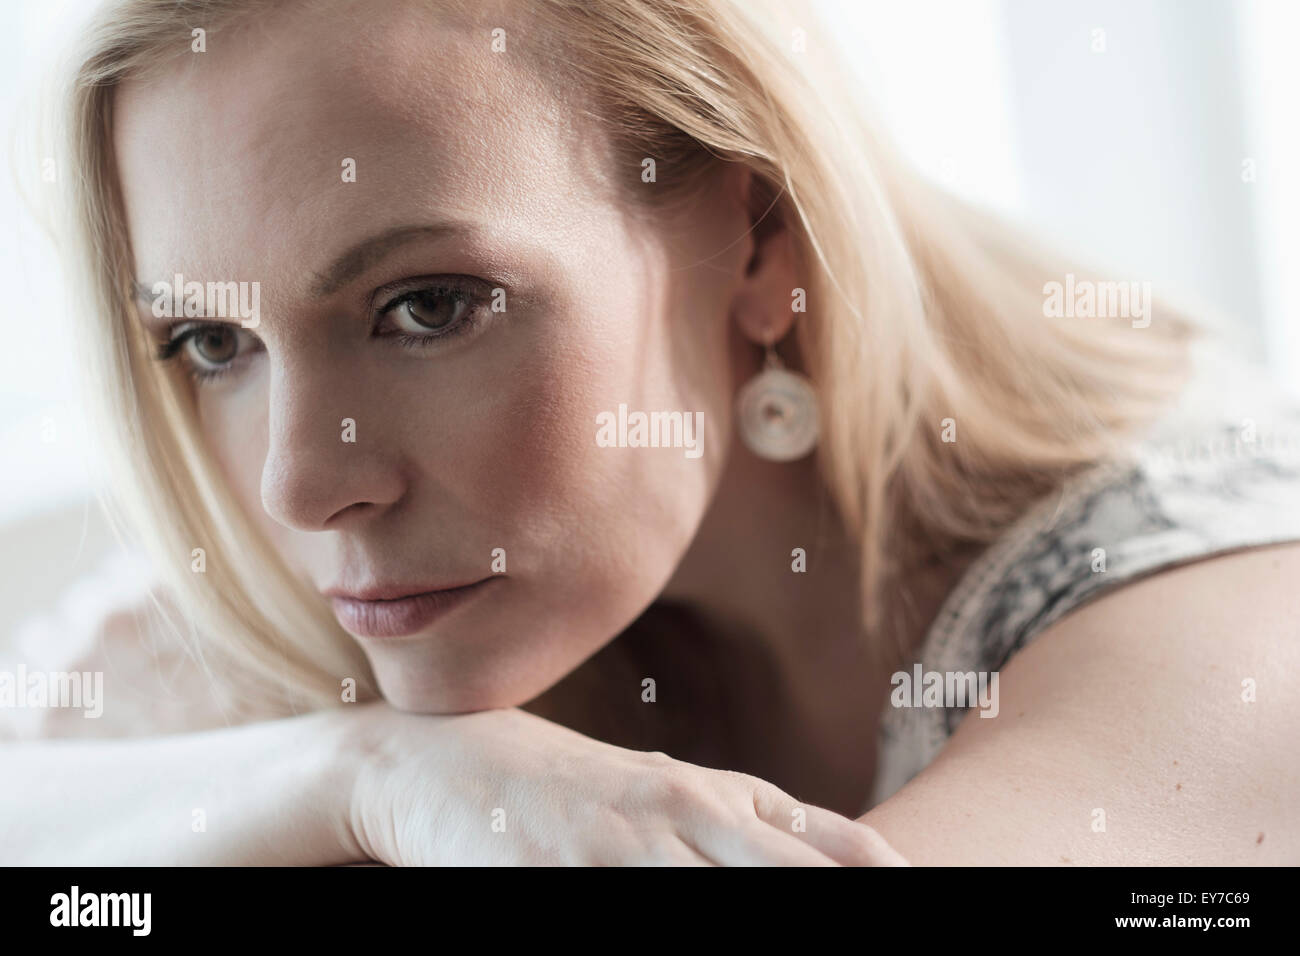 Pensive mid-adult woman lying on bed - Stock Image